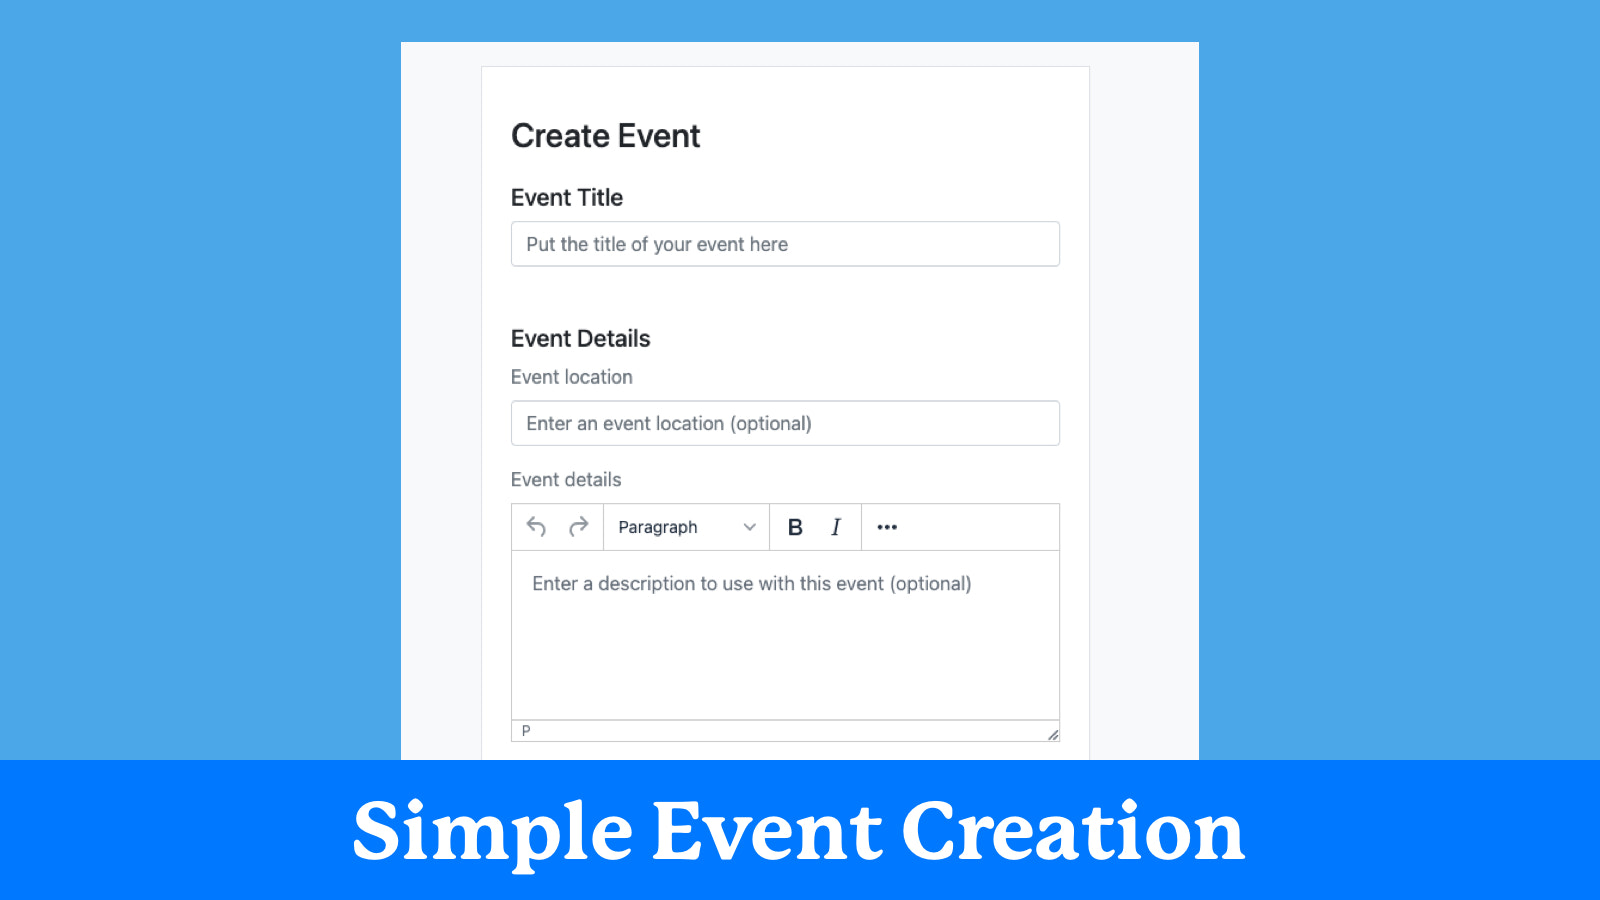 Simple event creation